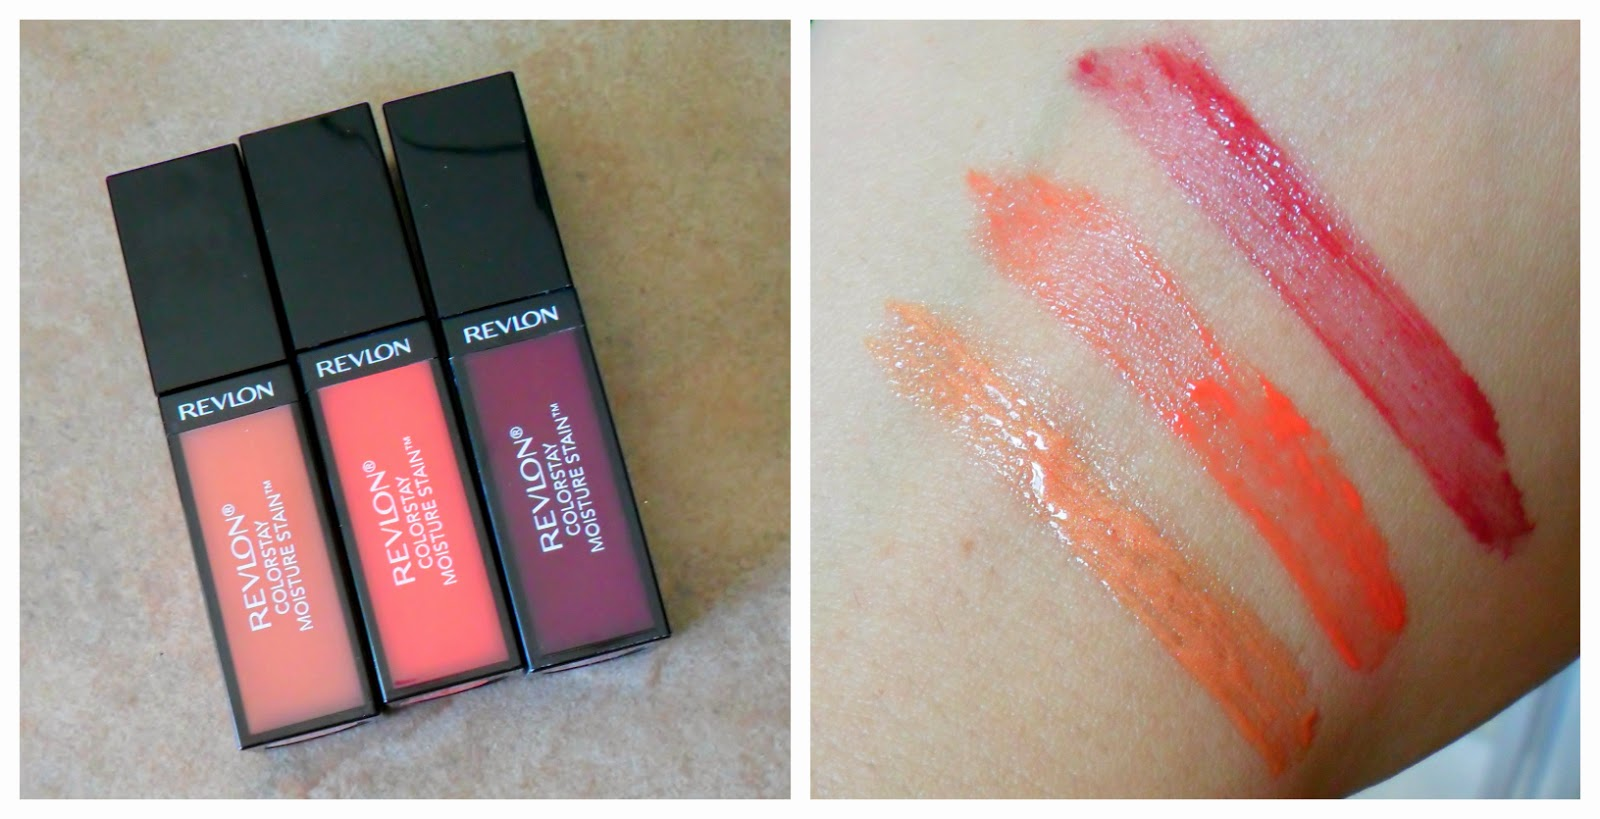 Review: Revlon Colorstay Moisture Stain's in India Intrigue, Parisian Passion, LA Exclusive, Barcelona Nights, Cannes Crush & London Posh